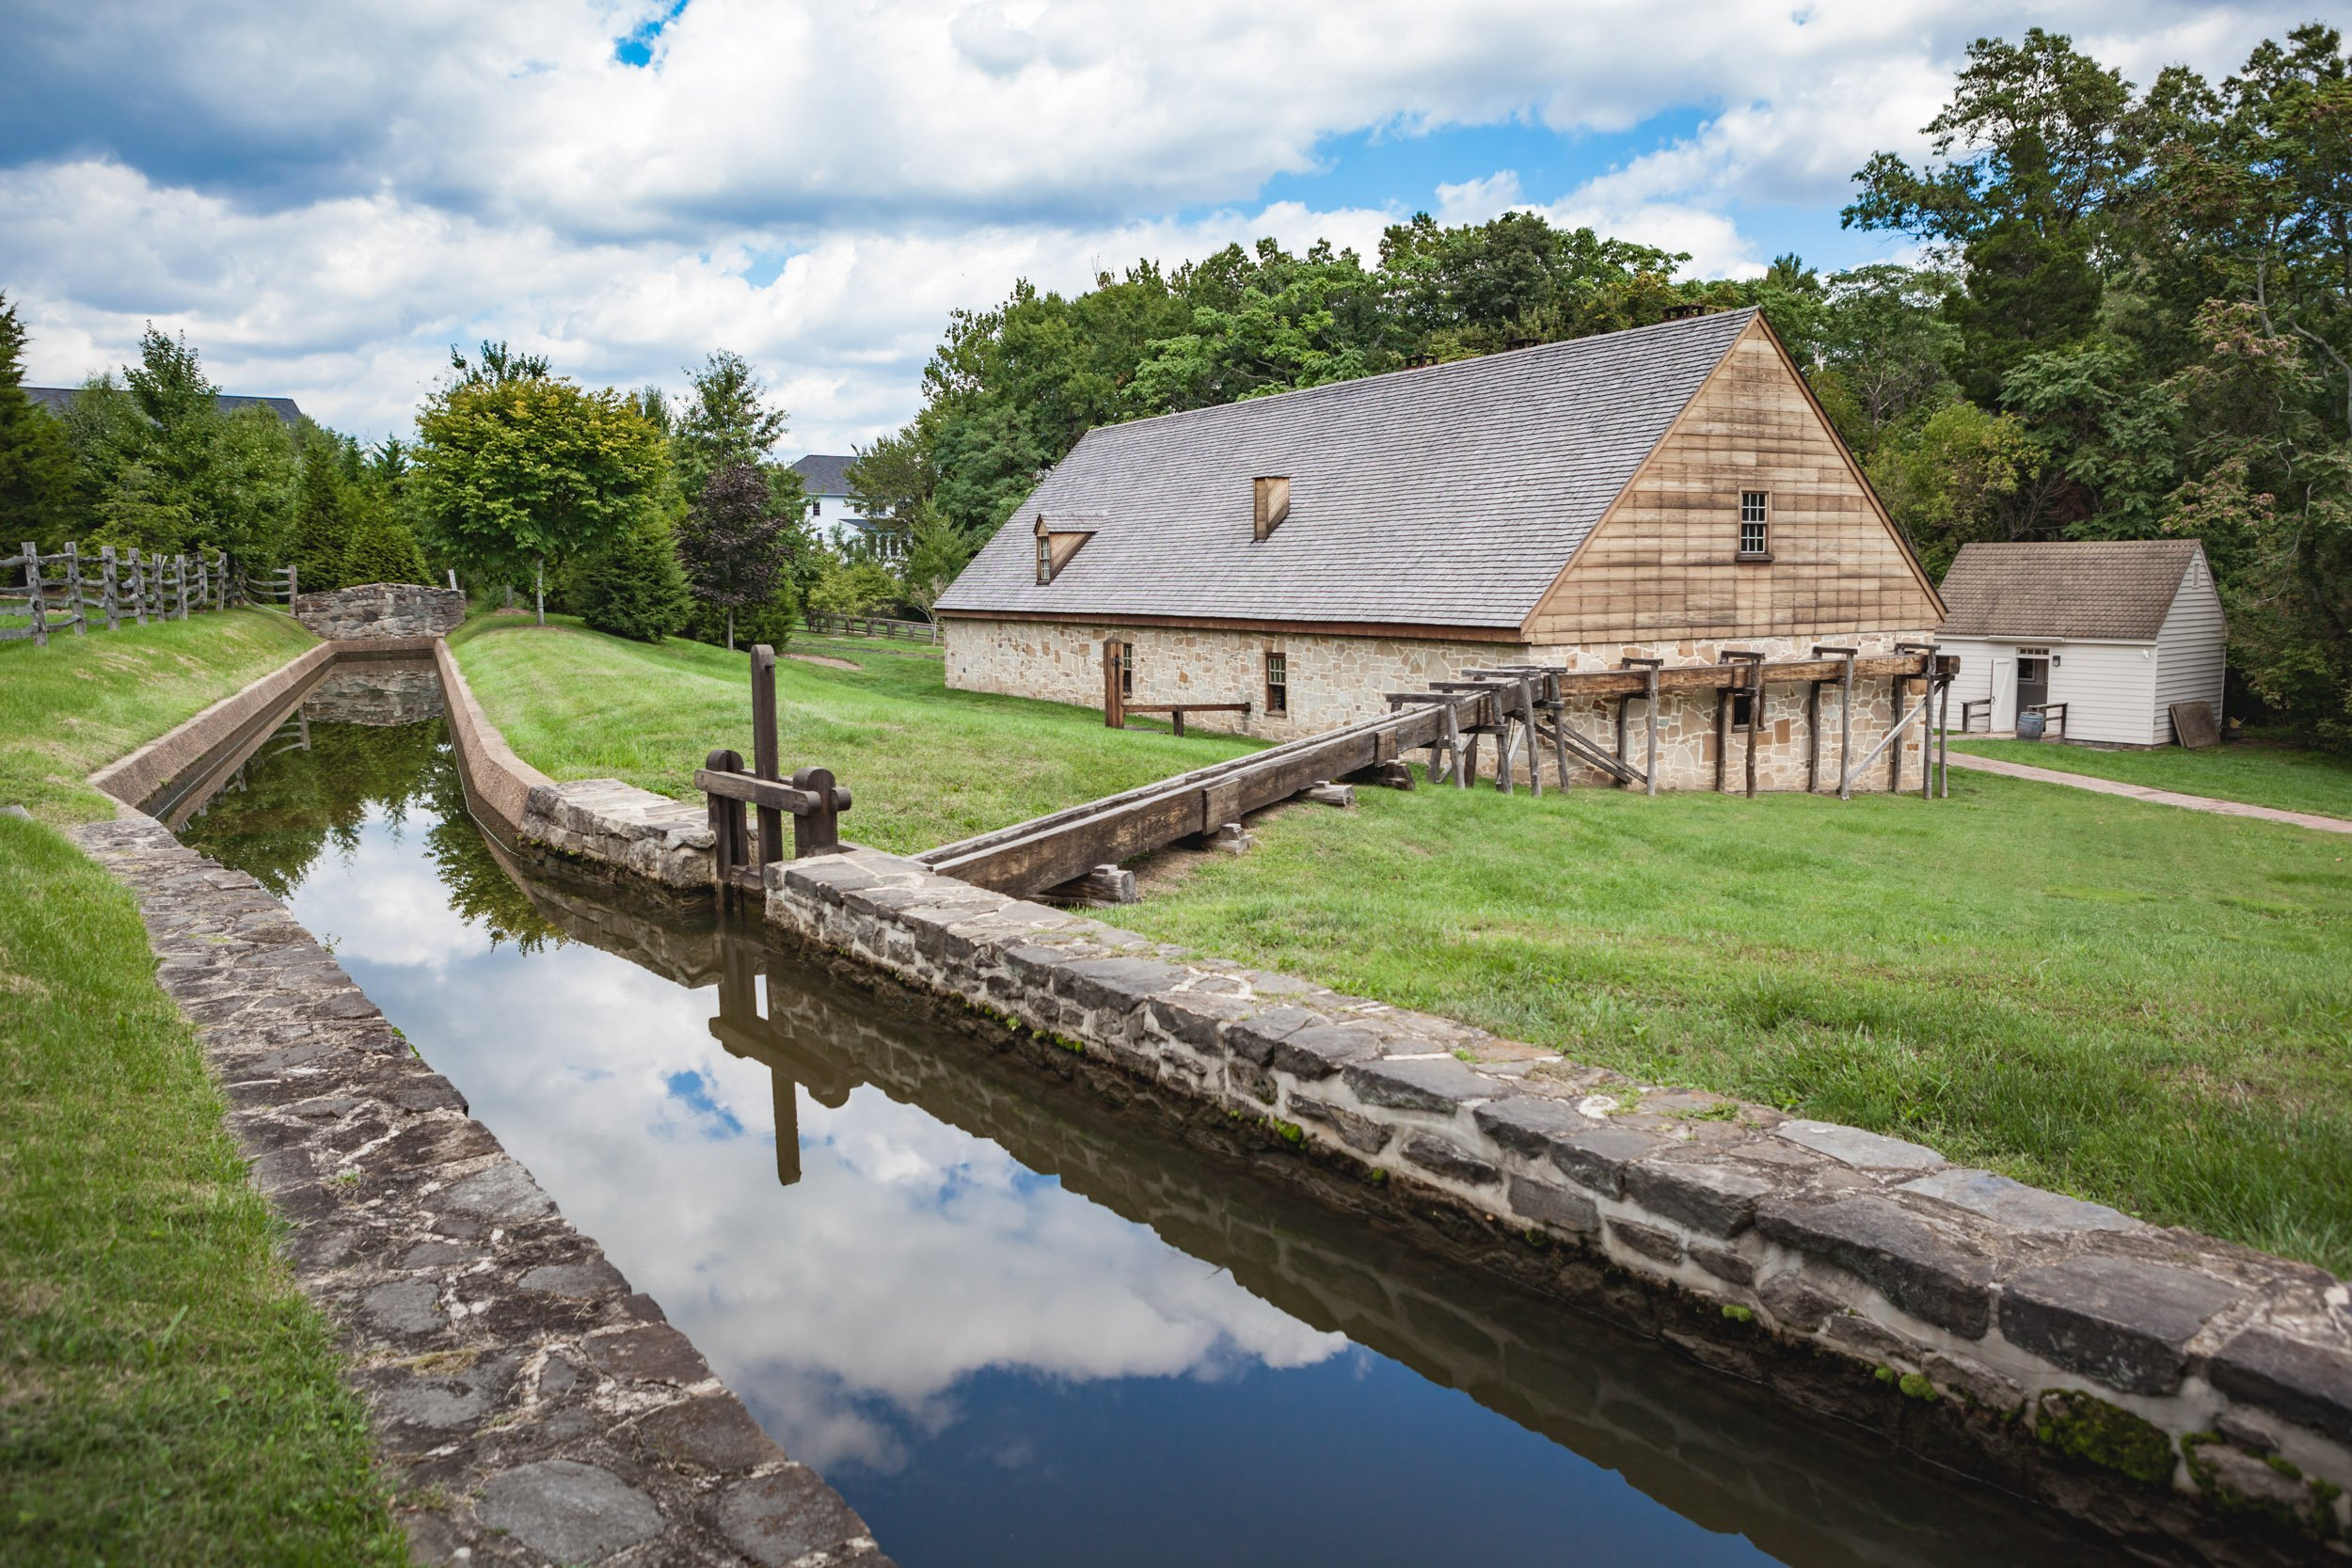 George Washington's Distillery and Gristmill